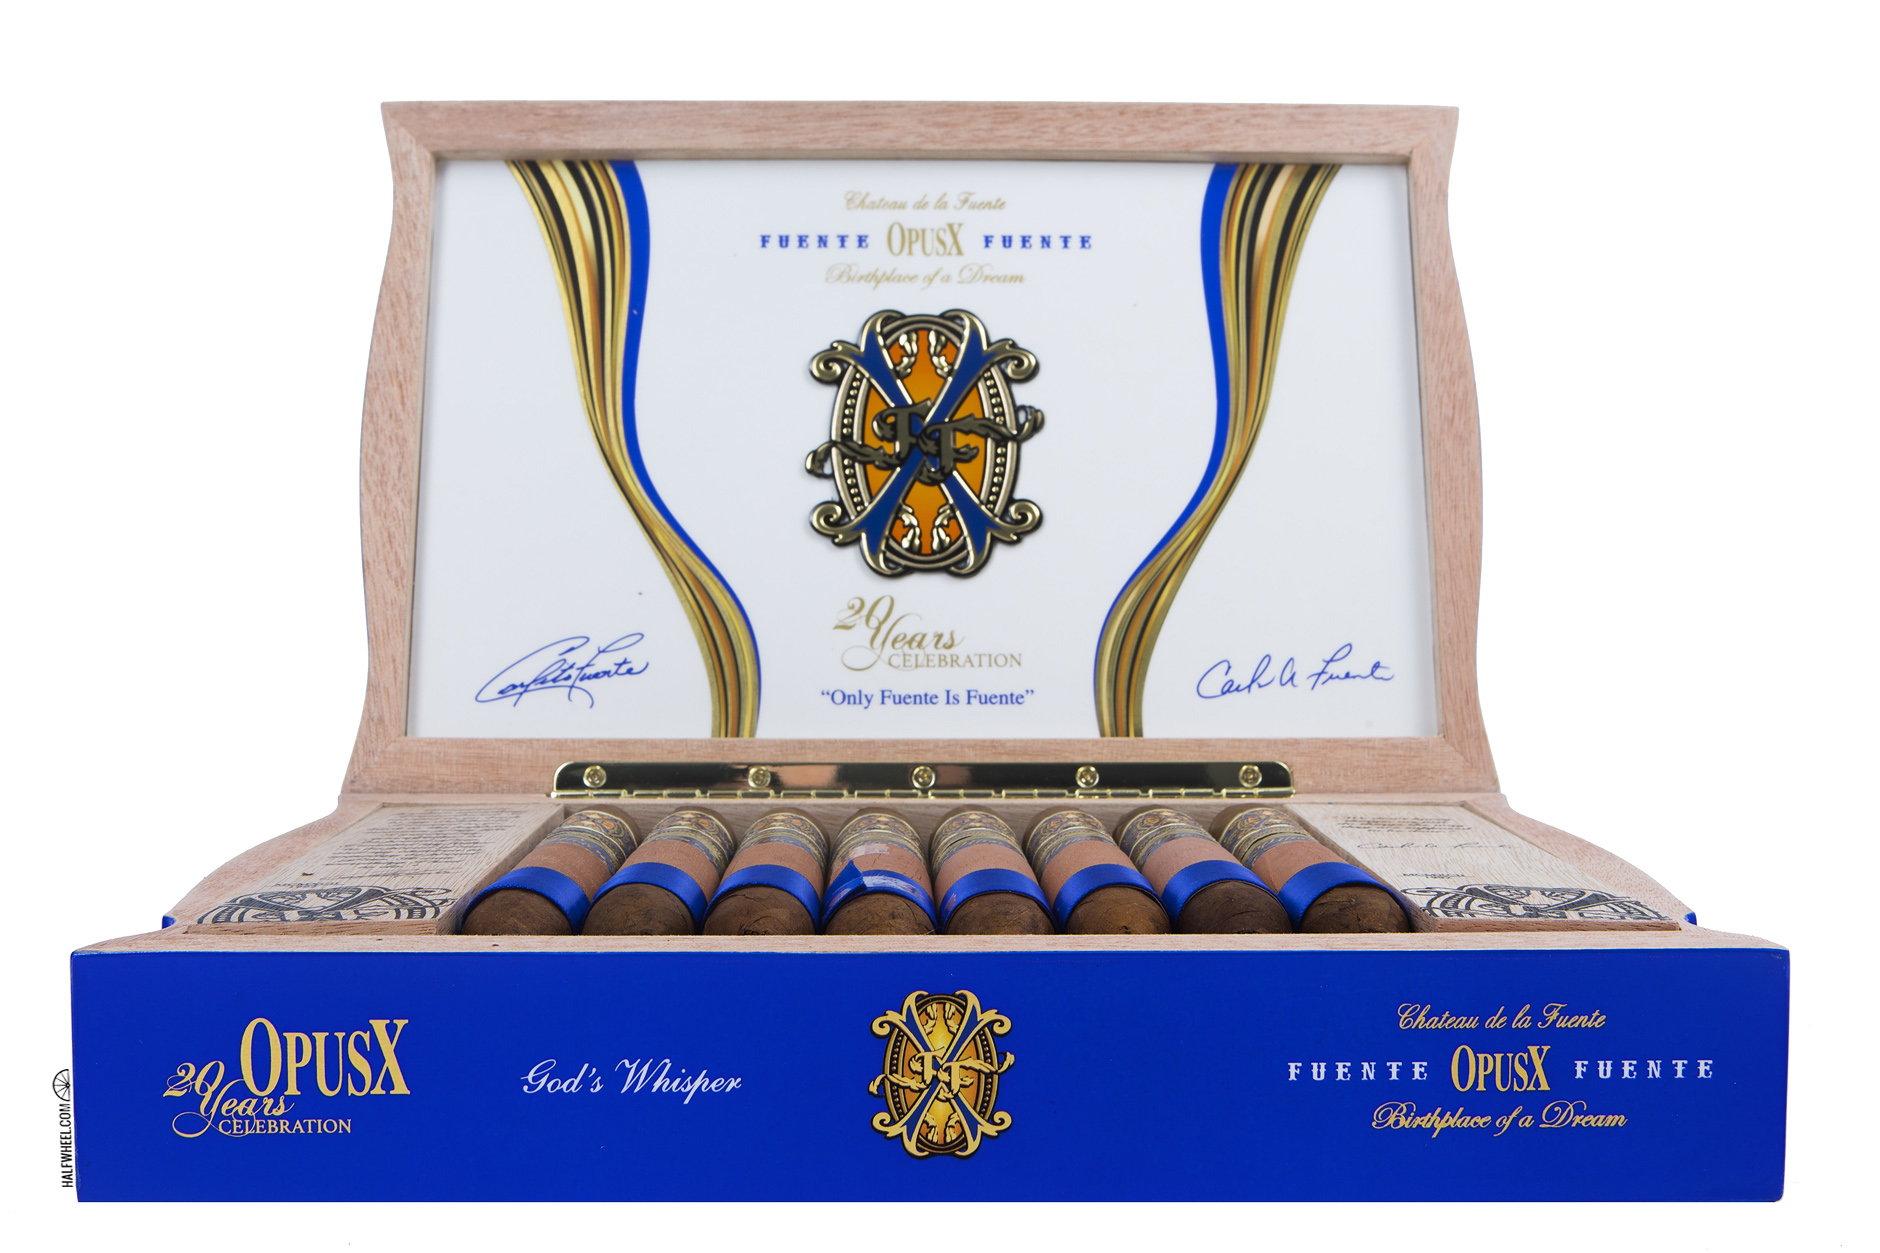 fuente-fuente-opusx-20-years-celebration-box-2